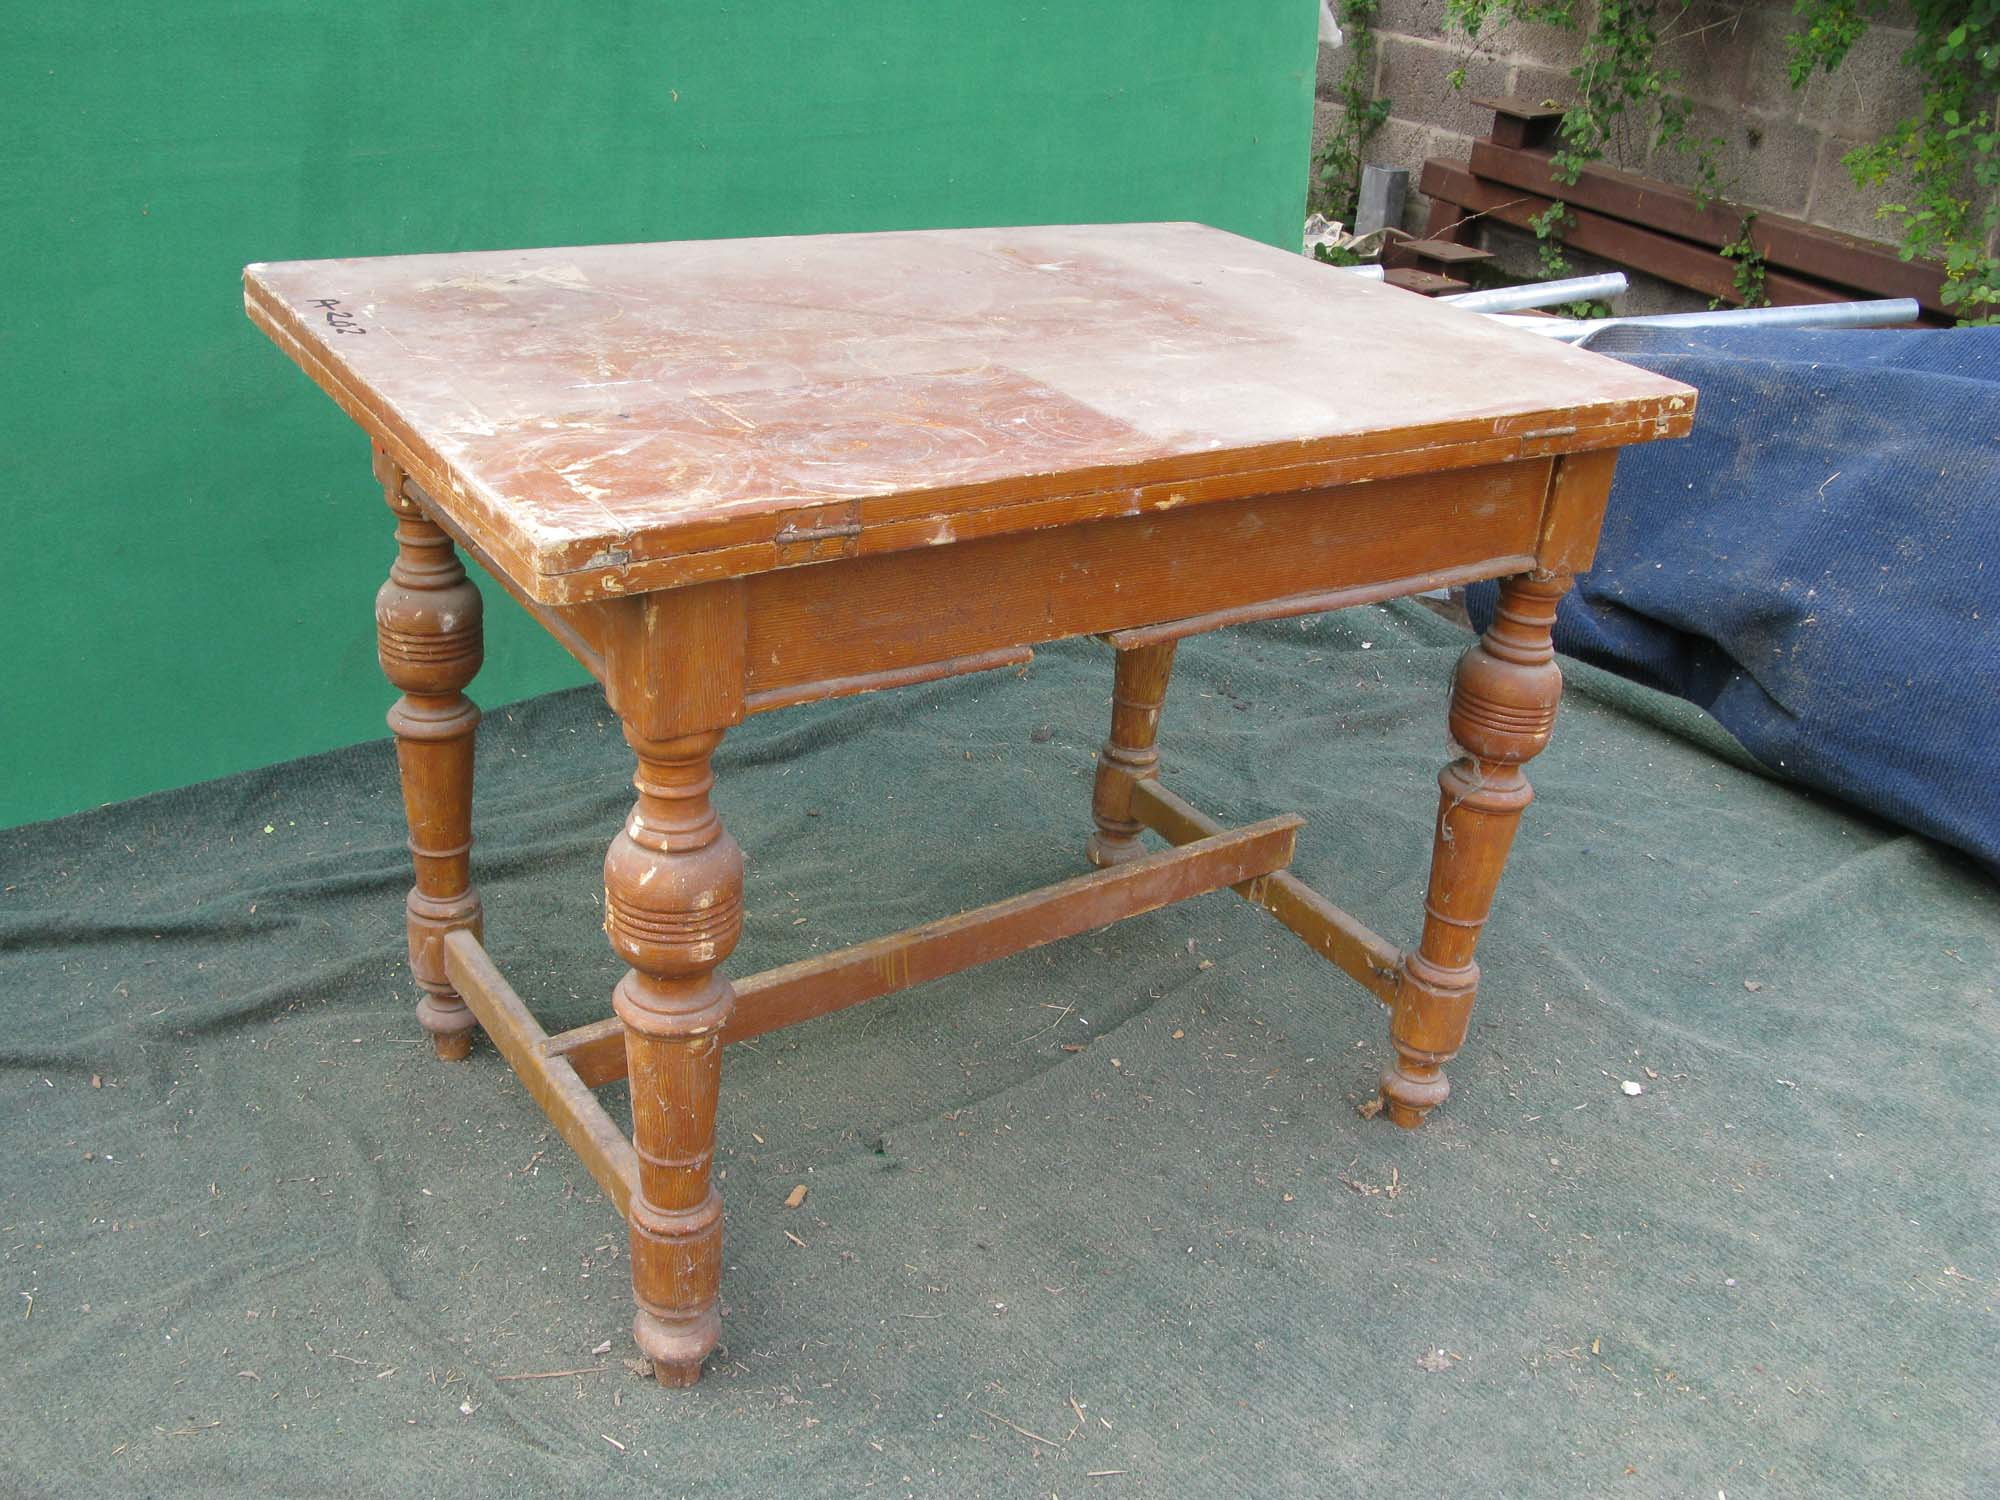 This Is A Good Sturdy Table, Good Strong Legs   We Have Stretched The Base  On This Old Table, If You Click On The Photo You Will See How ...